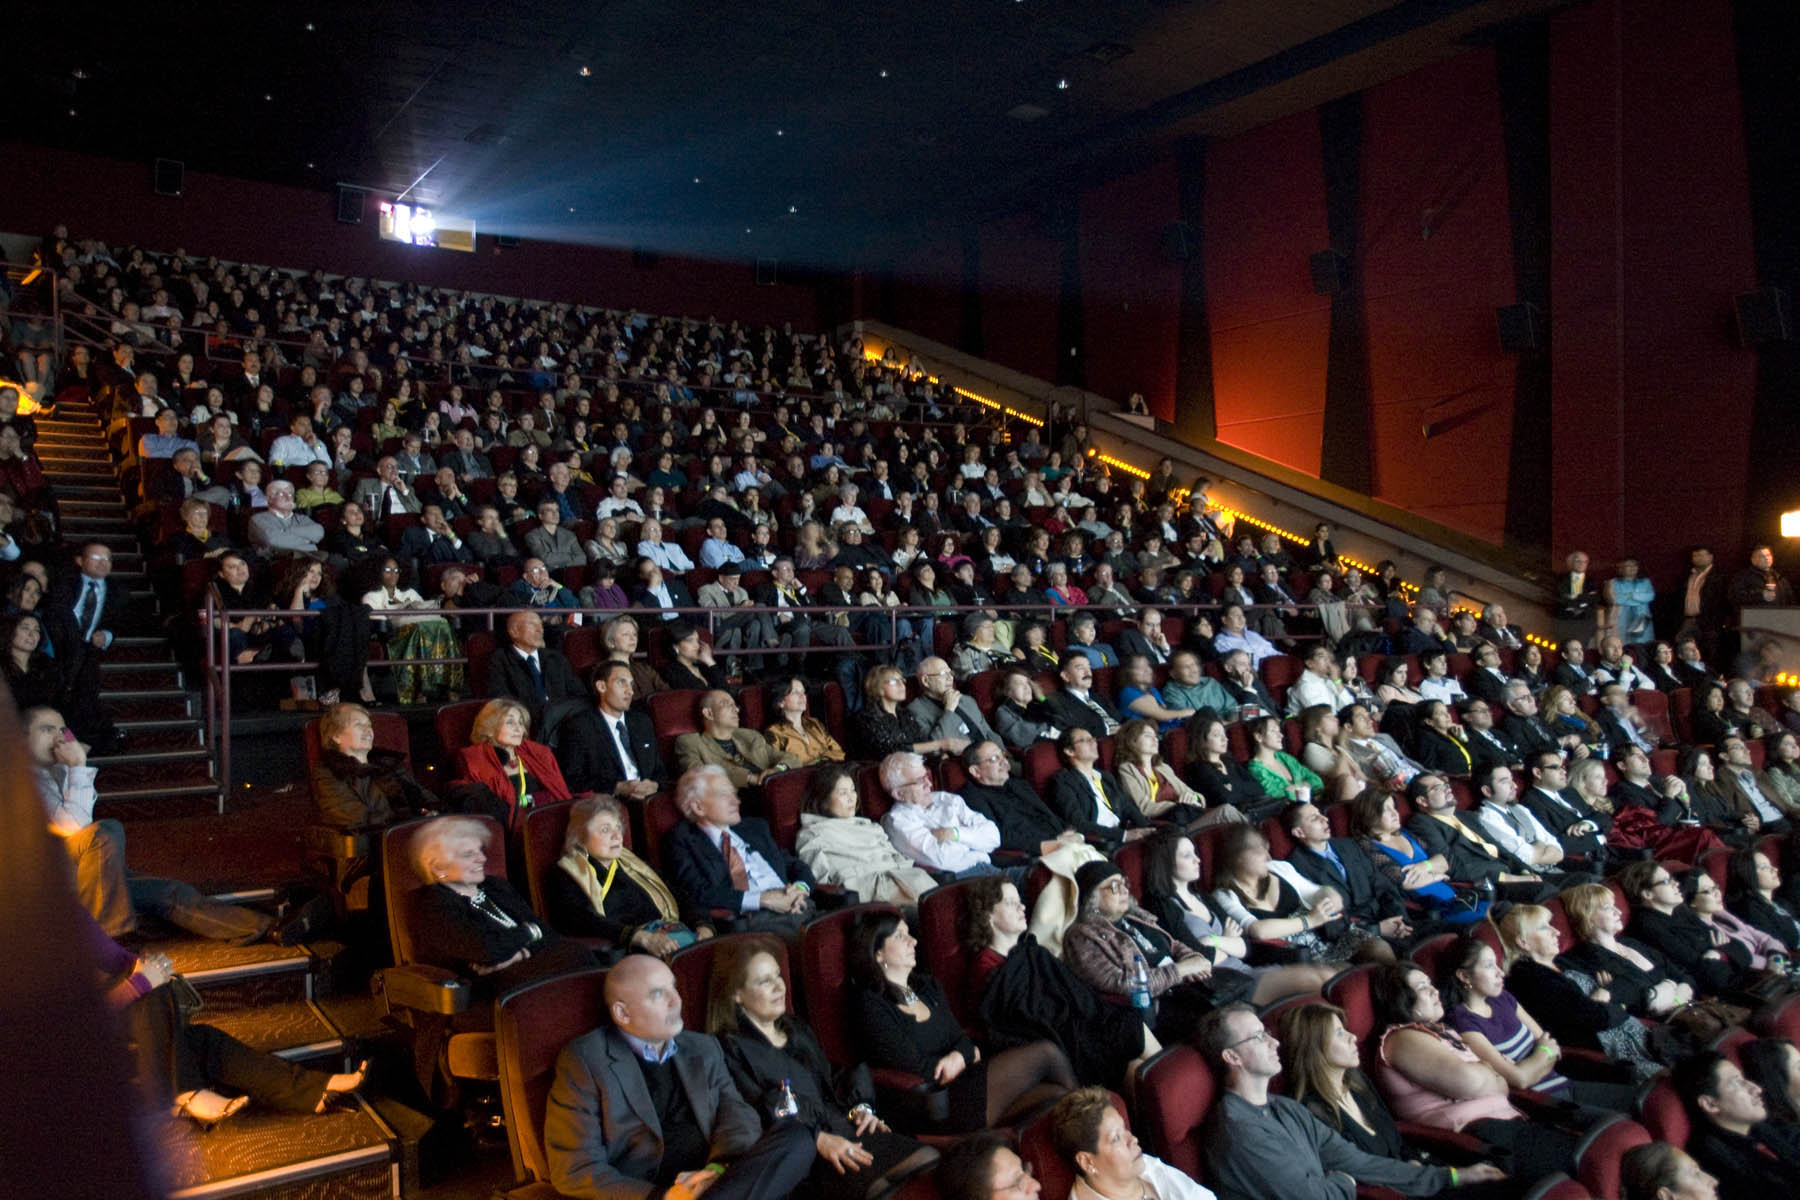 L'industria cinema plaude al decreto sulle windows